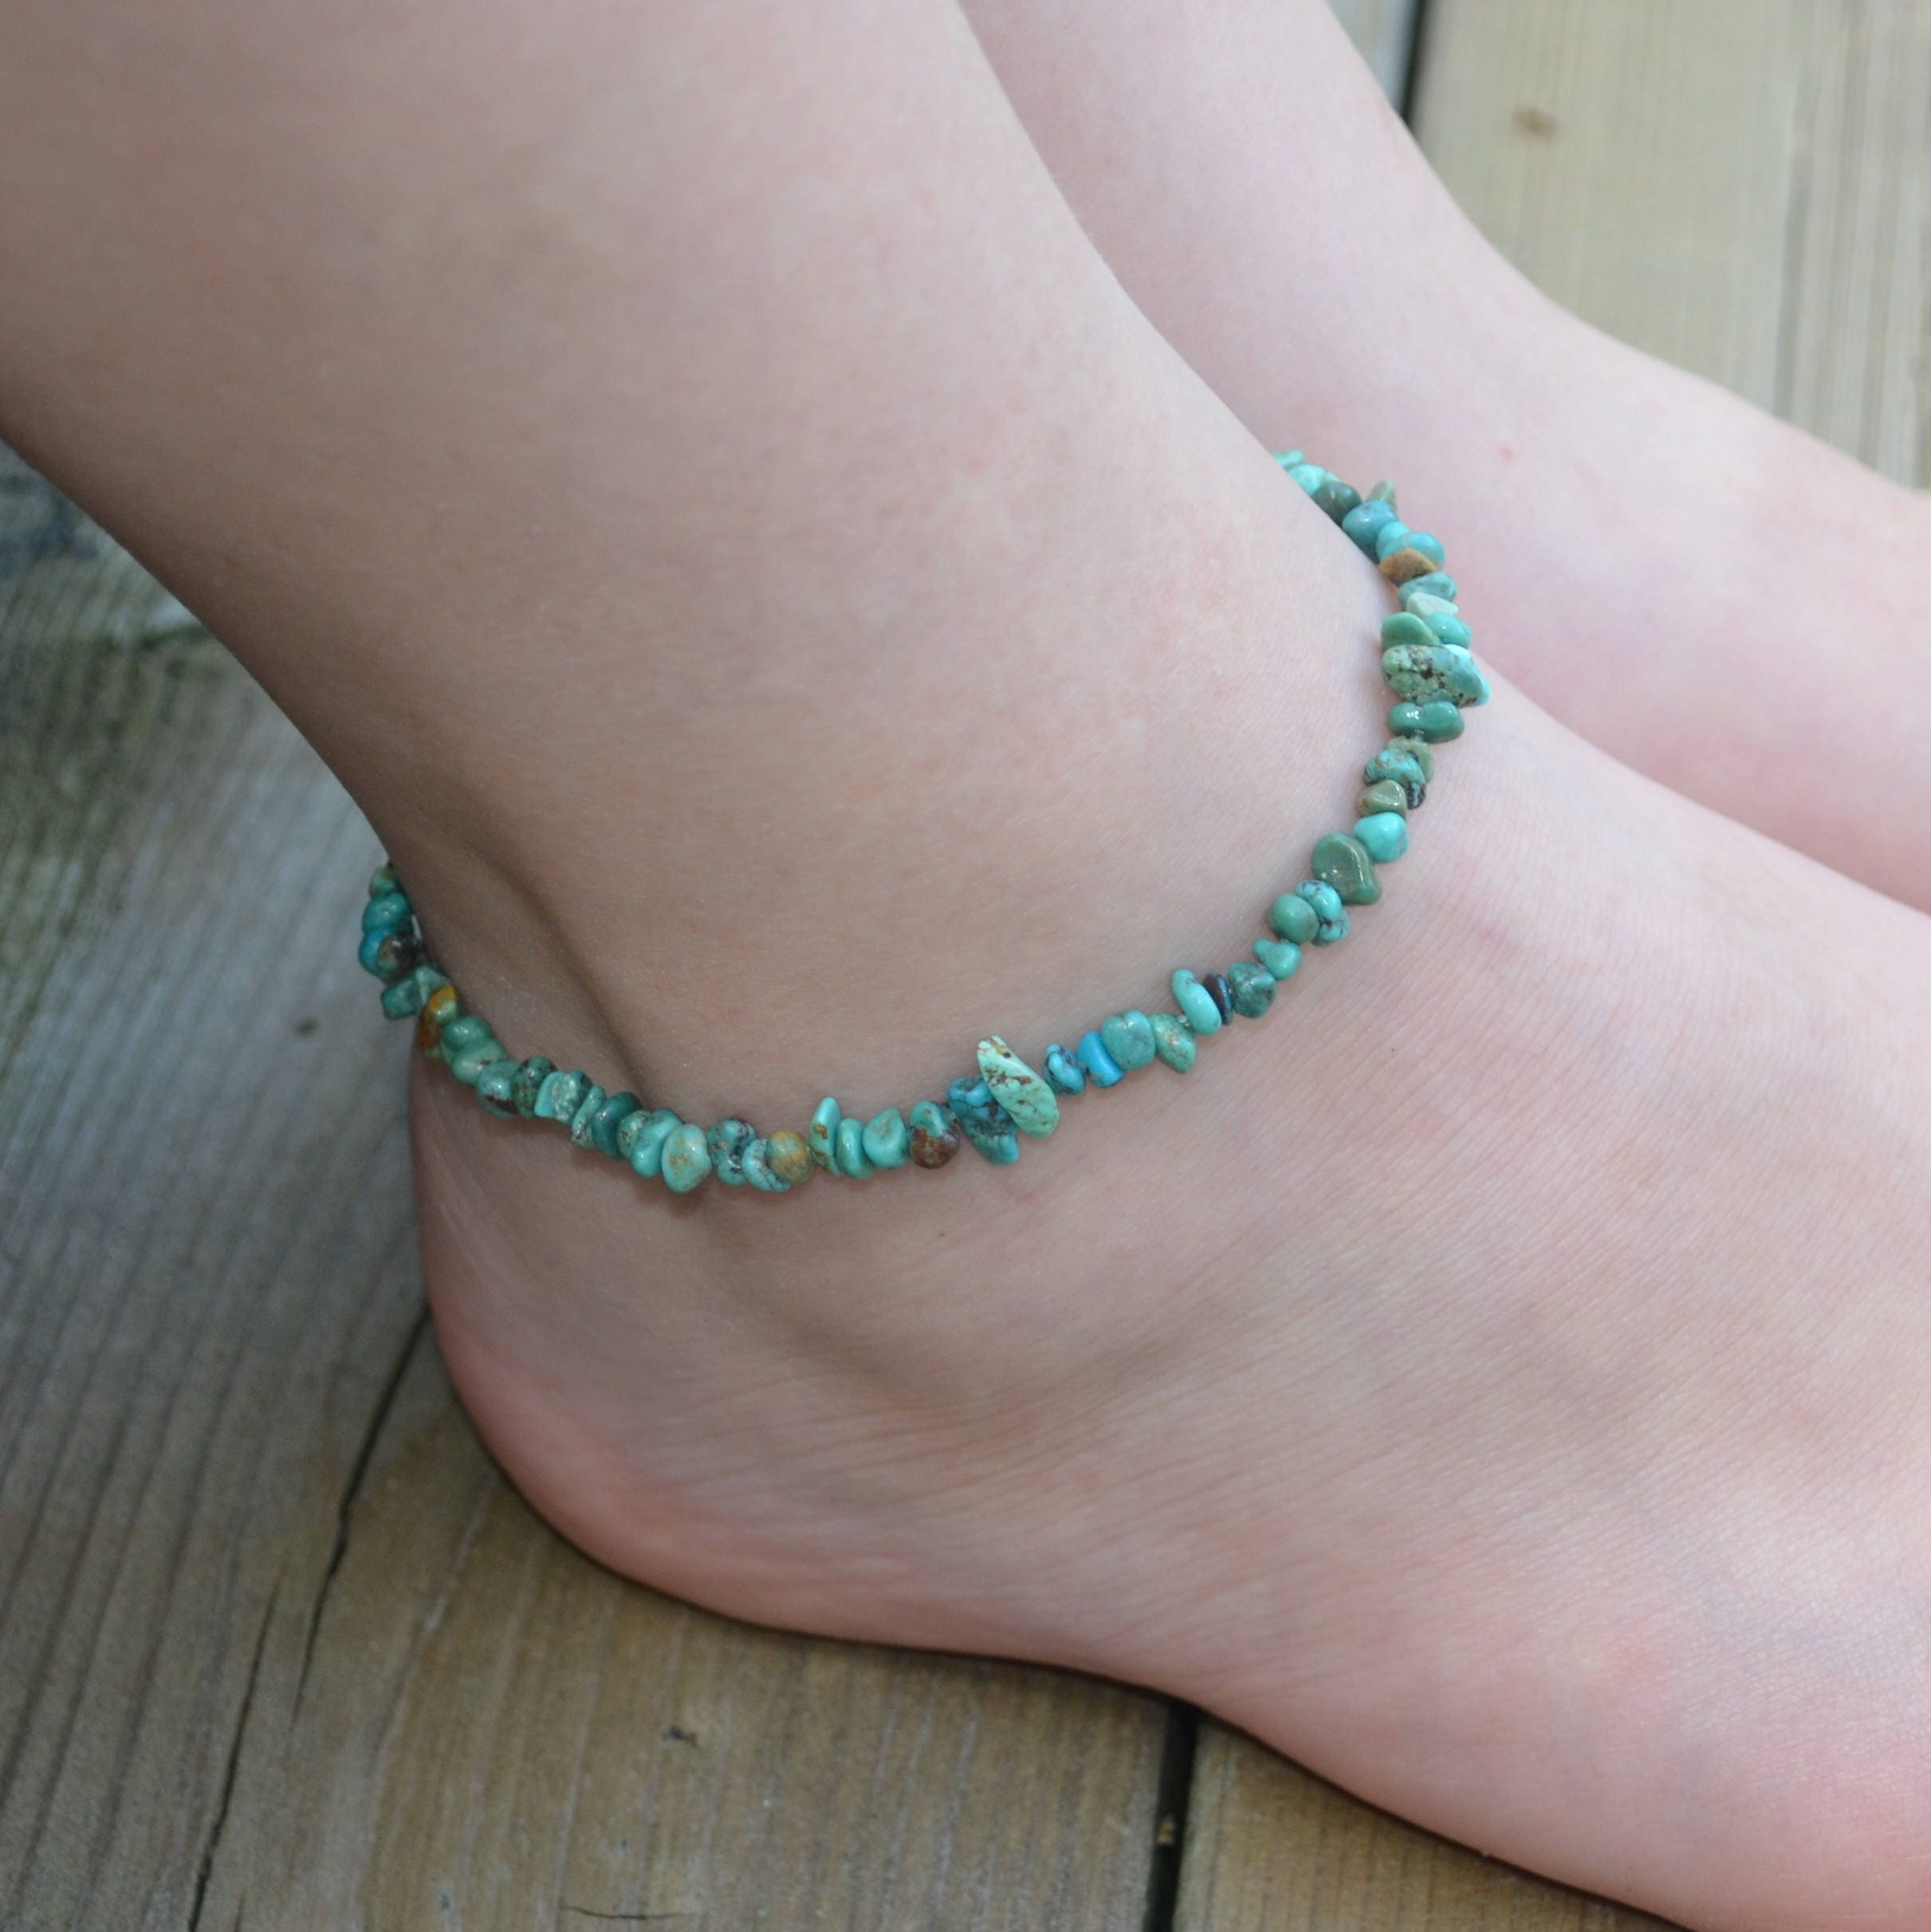 jewelry birthstone anklet bling plated az ankle gold beads filled bracelet bead sgs dangling brass